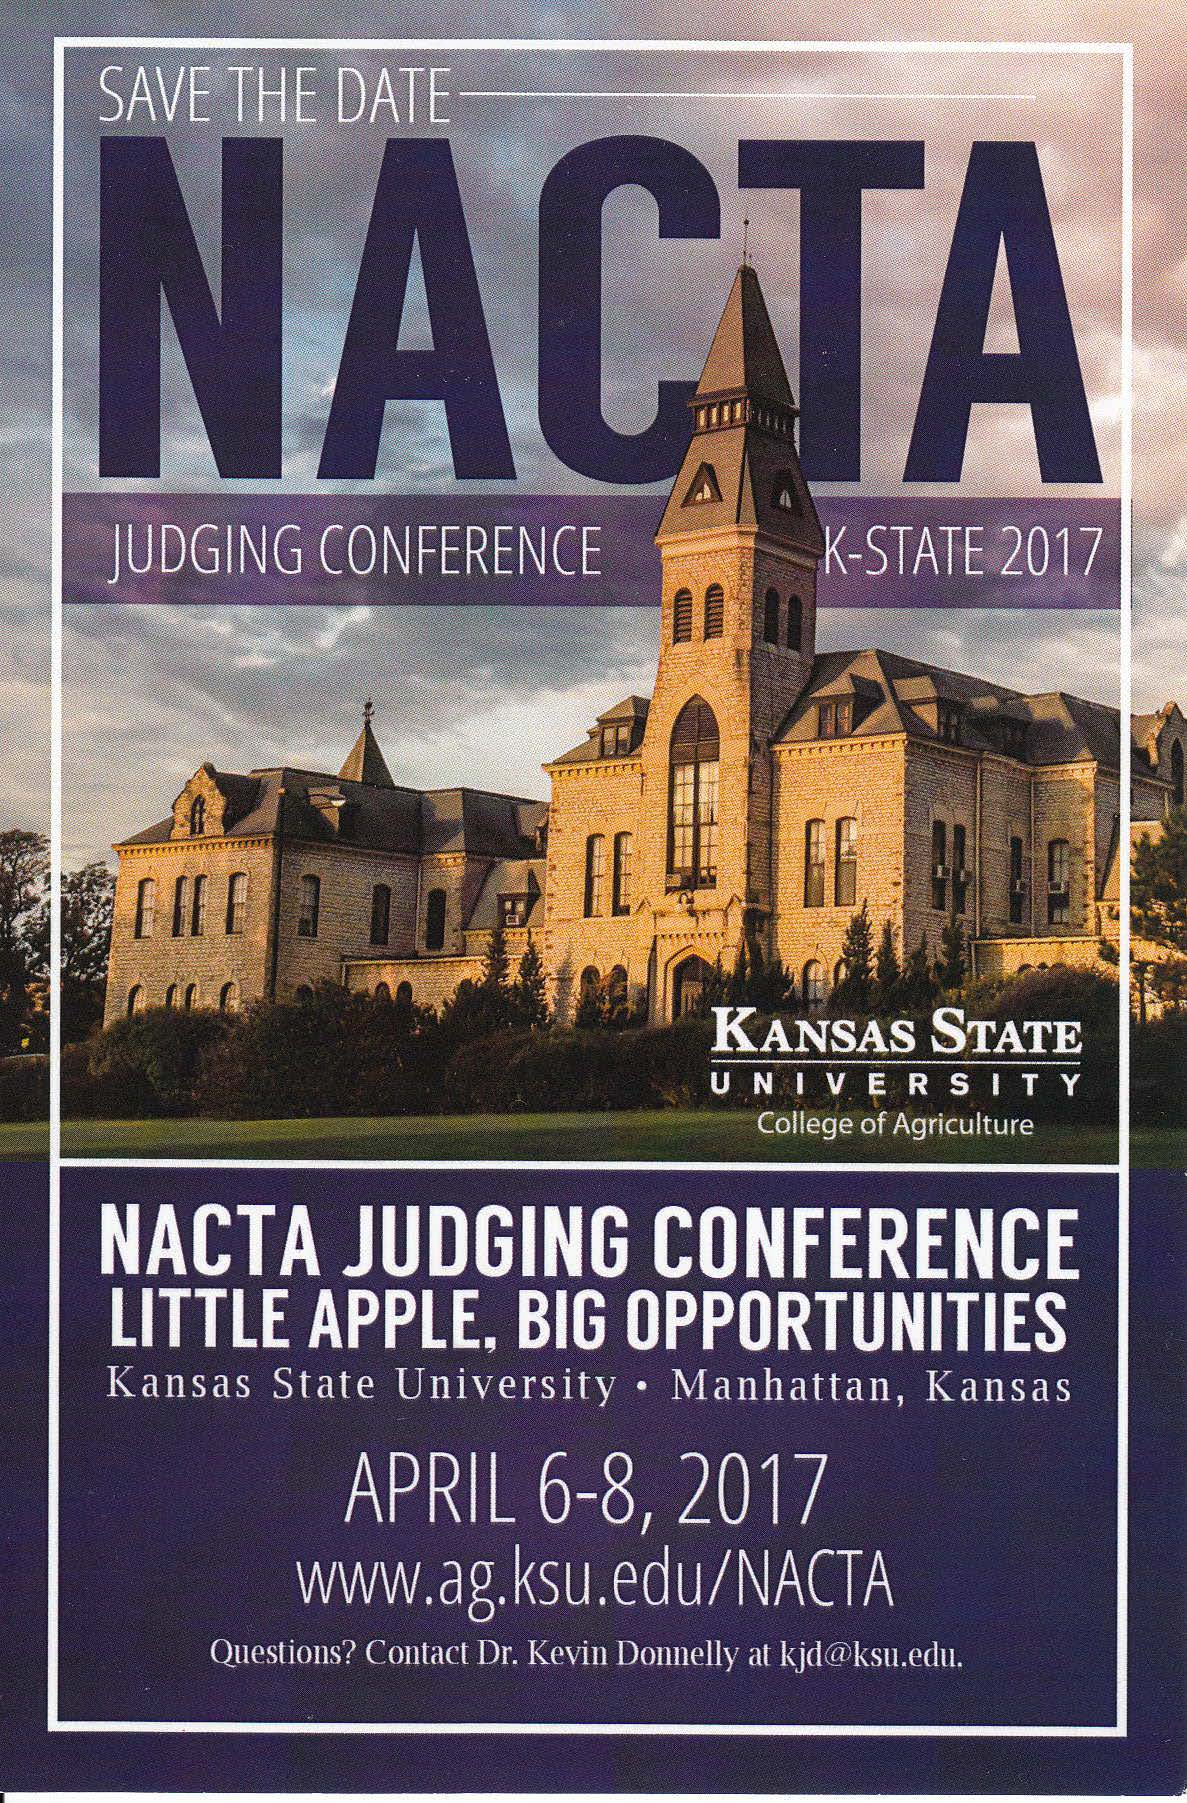 NACTA Judging Conference 2017KSU save the date CROPPED